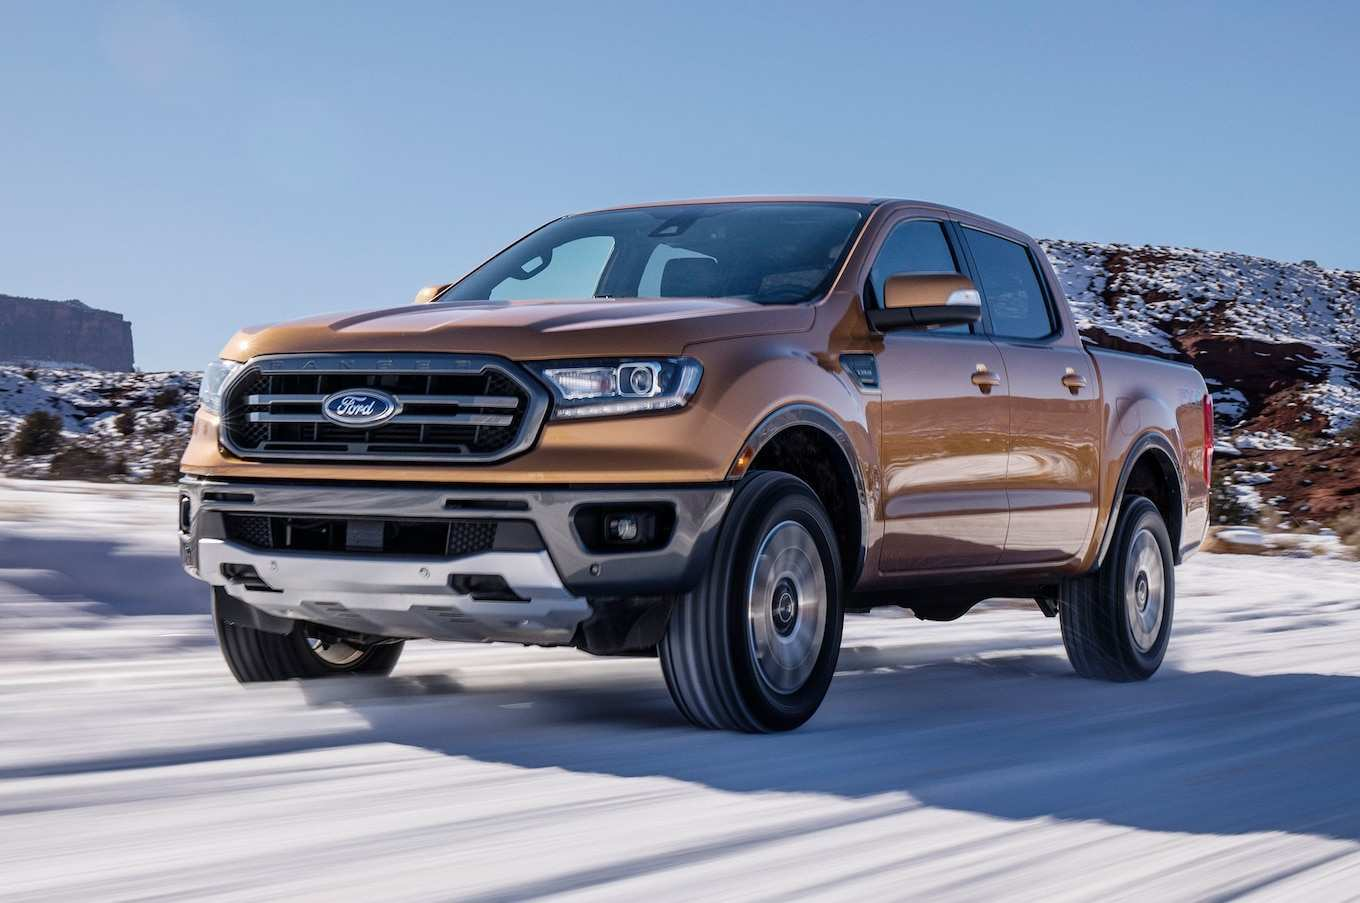 93 New 2019 Ford Ranger Engine Options Specs and Review by 2019 Ford Ranger Engine Options